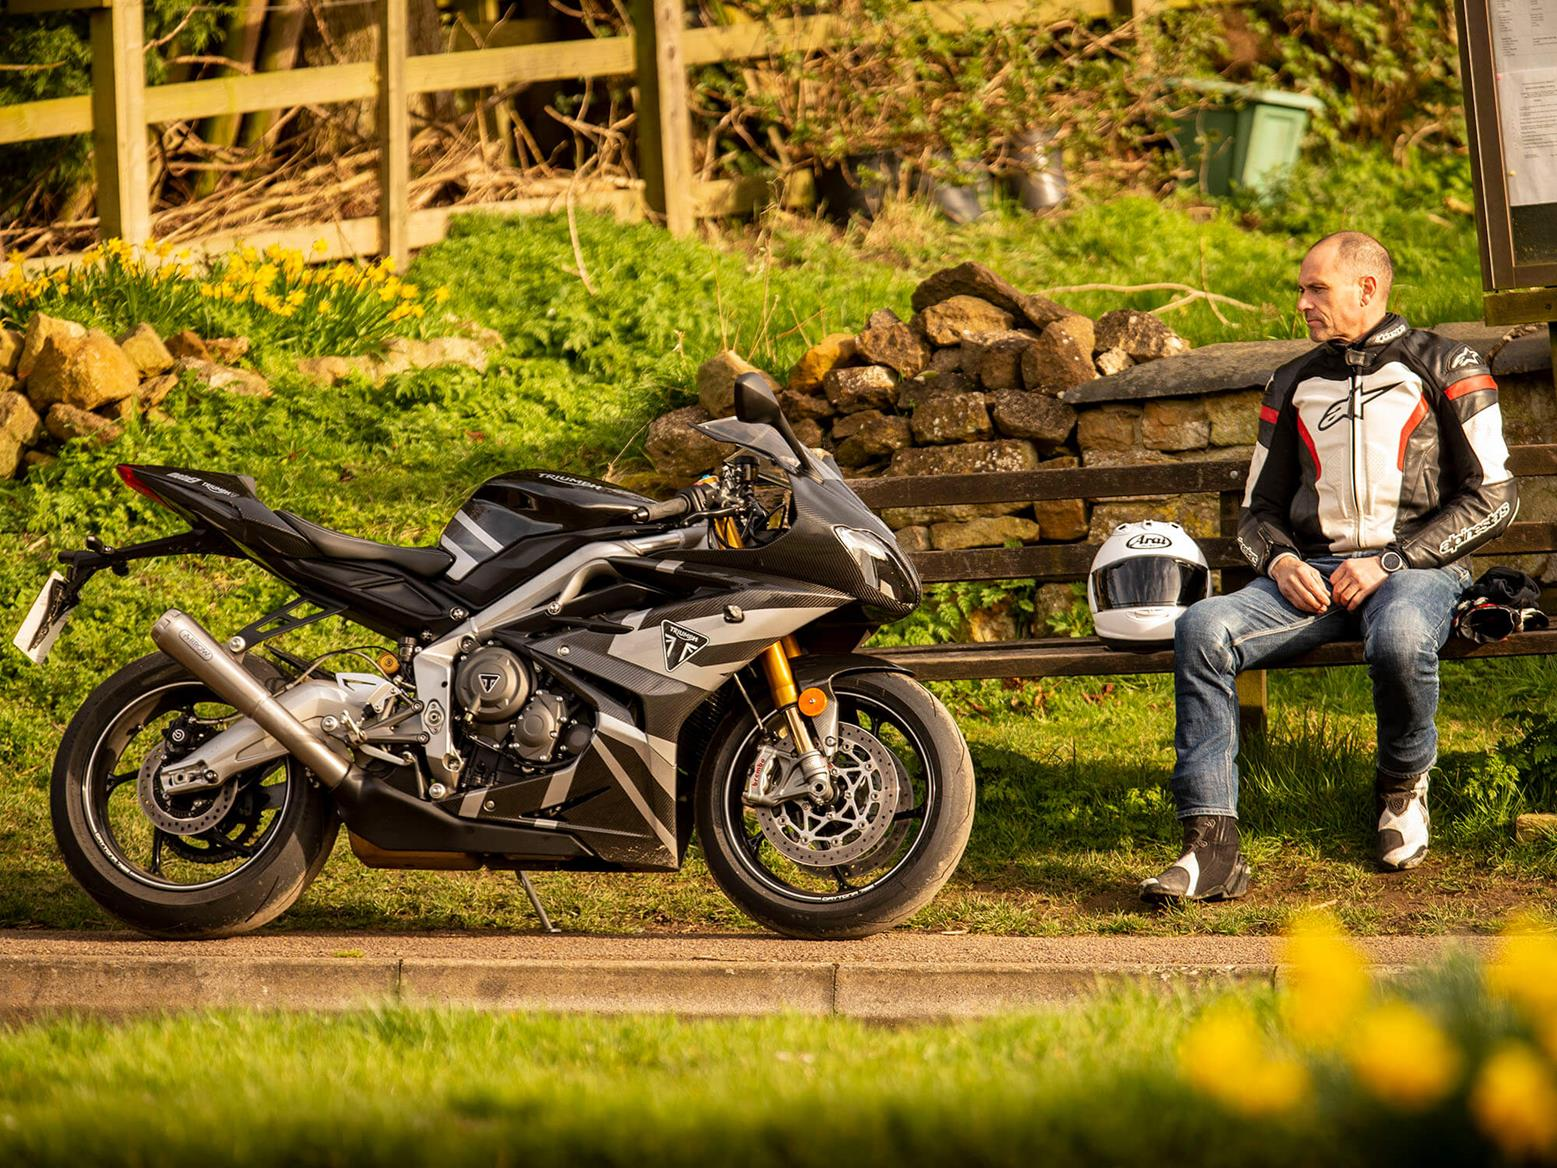 Triumph Daytona Moto2 765 Limited Edition at the roadside